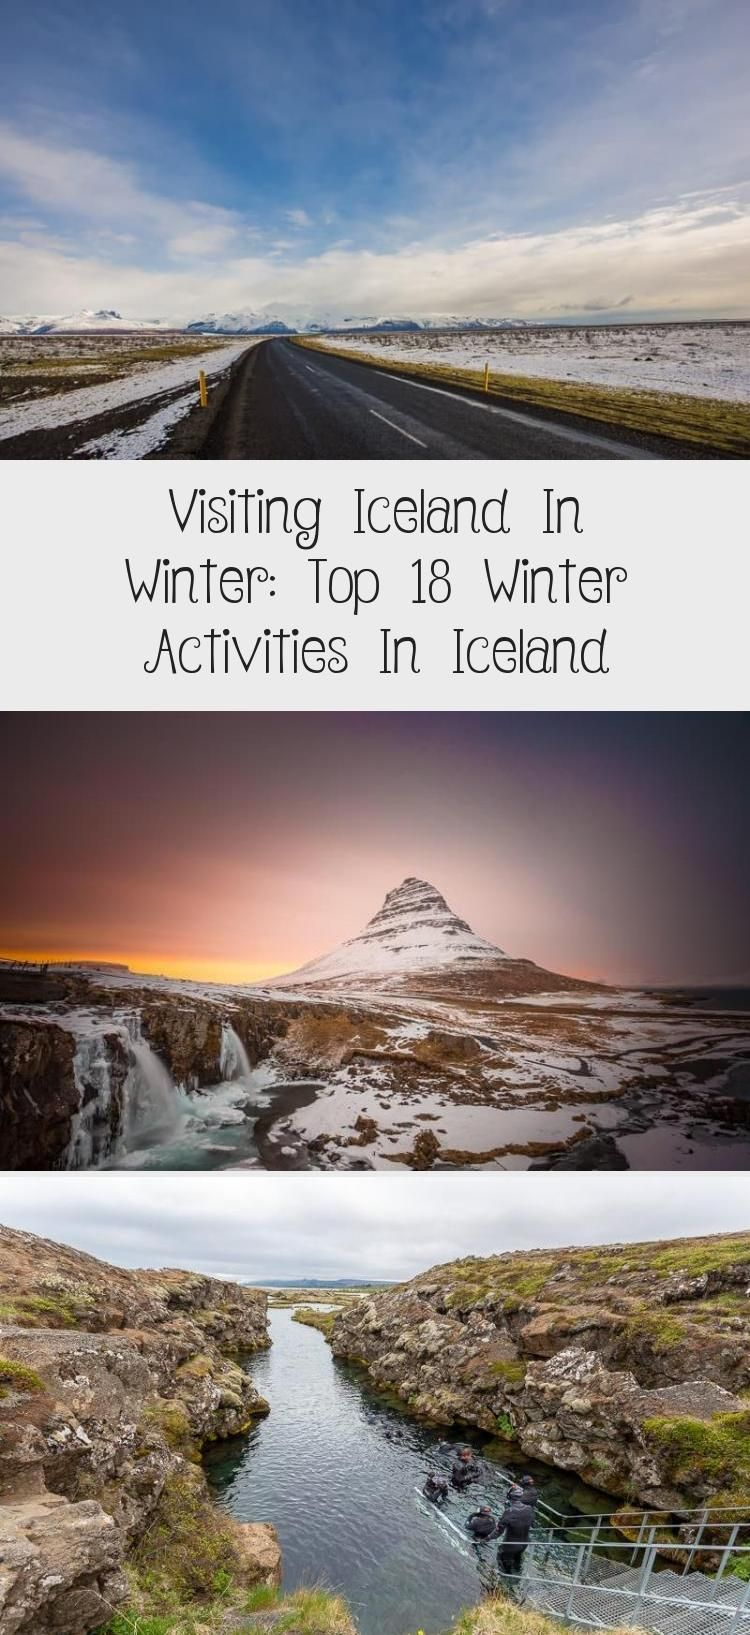 Visiting Iceland In Winter Top 18 Winter Activities In Iceland Visiting Iceland in winter can be a wonderful experience as there are fewer people beautiful winter landsca...